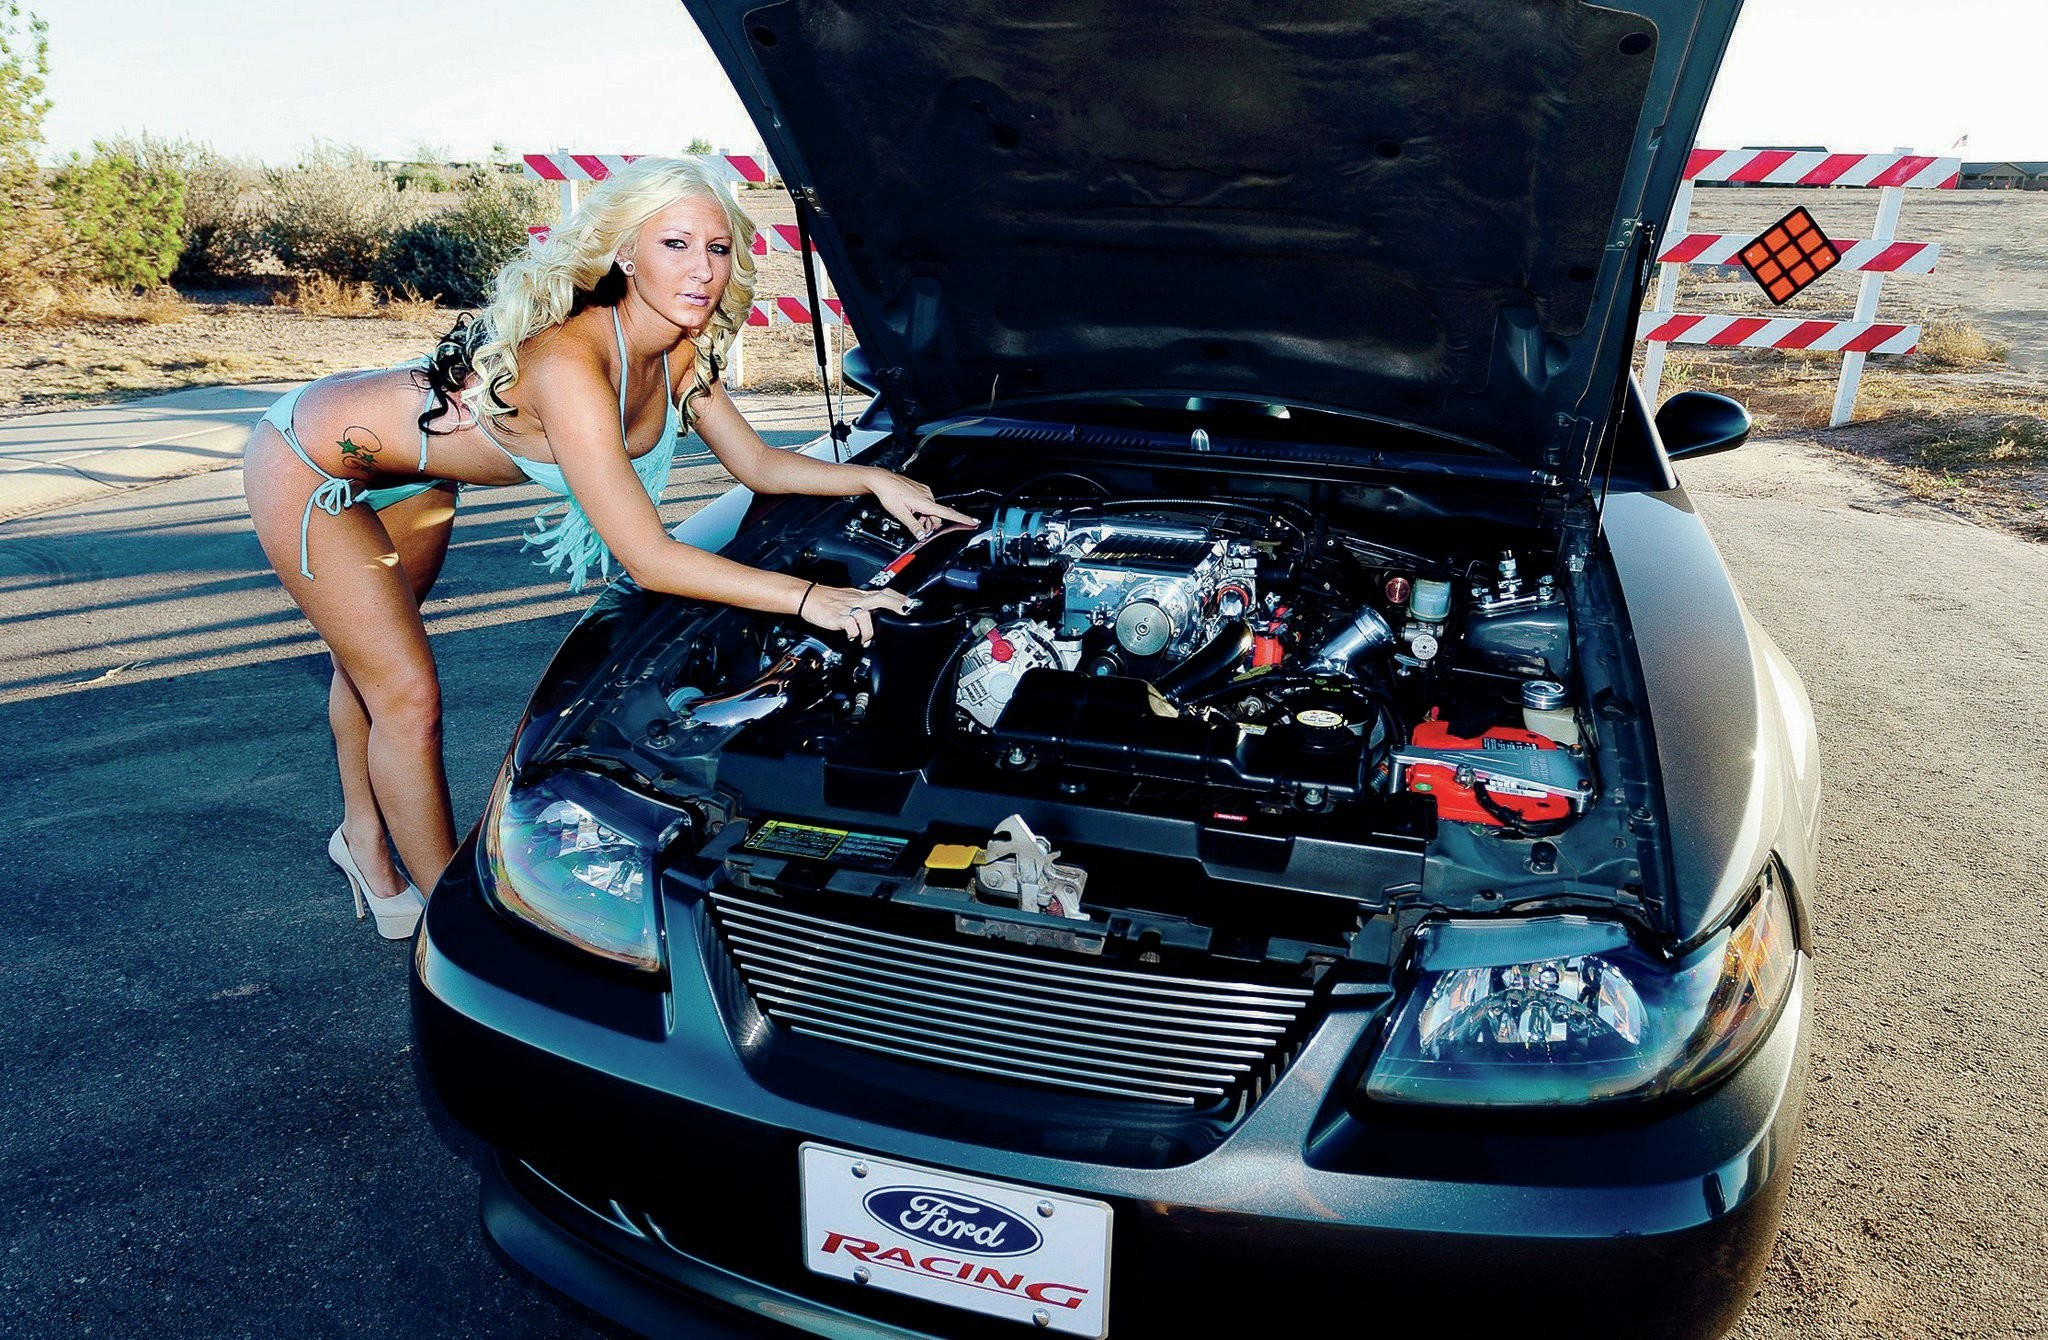 2048x1340 2003-ford-mustang-engine-view-emily-oney.jpg (2048×1340) | Cars And Girls |  Pinterest | Cars